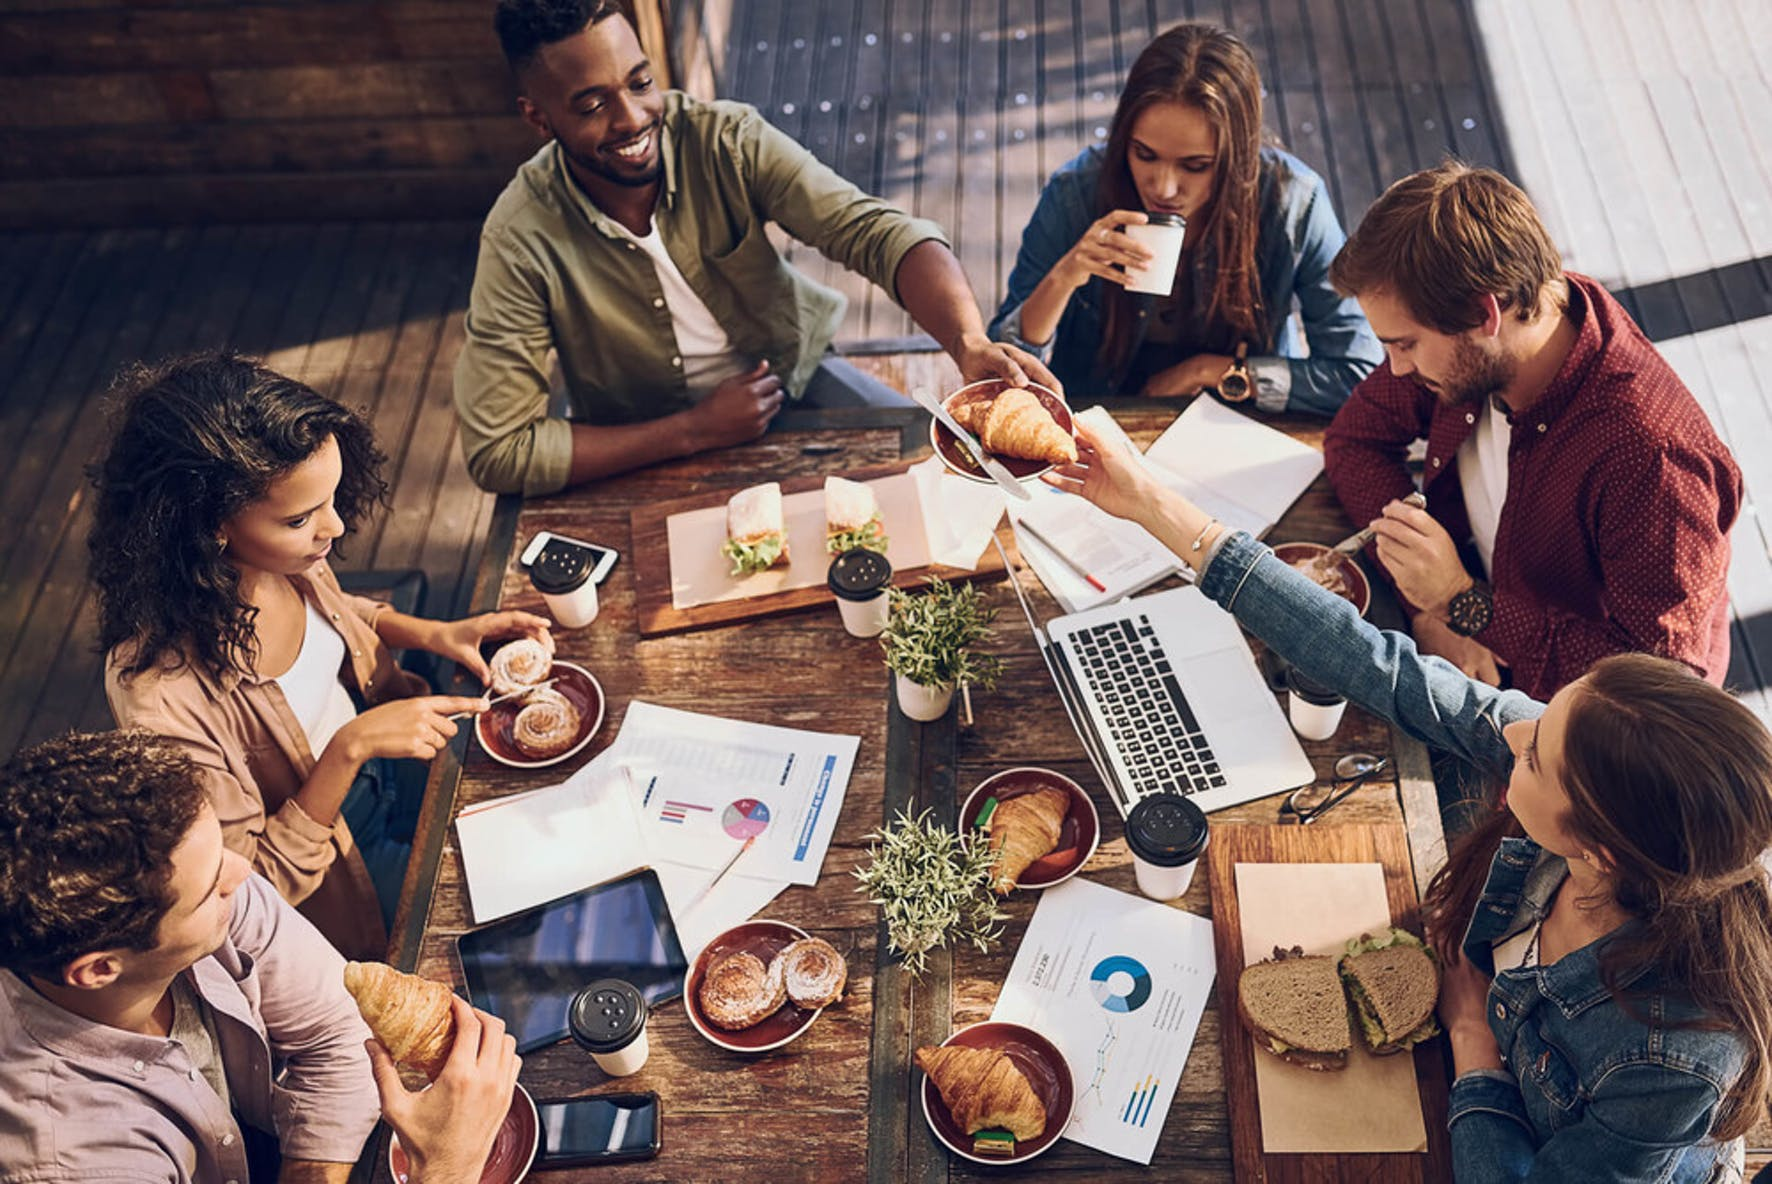 How to save money on lunch: team lunch together packing